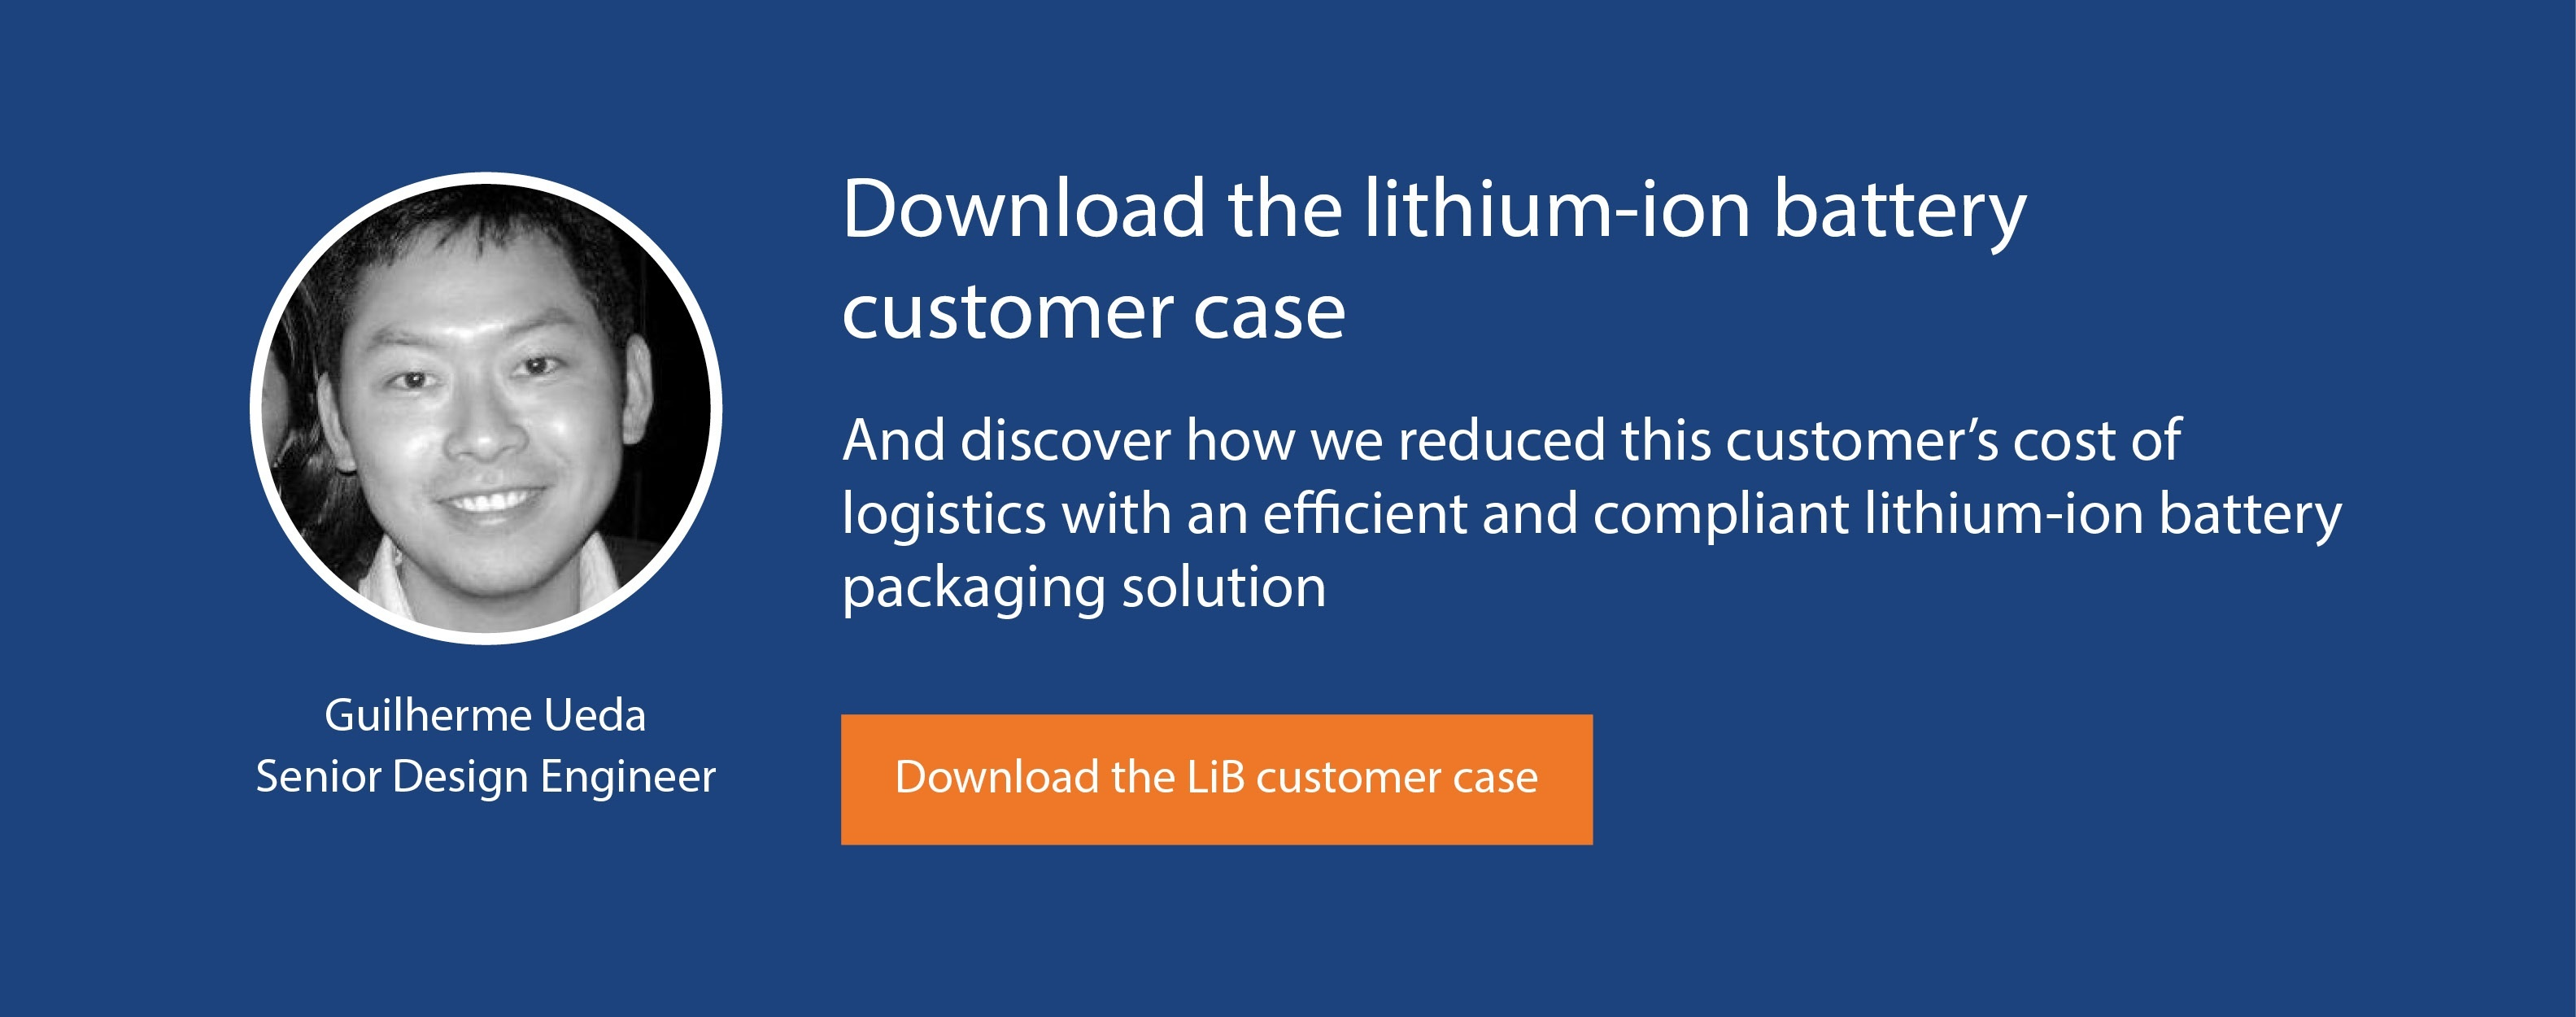 Customer Case Lithium-ion Battery